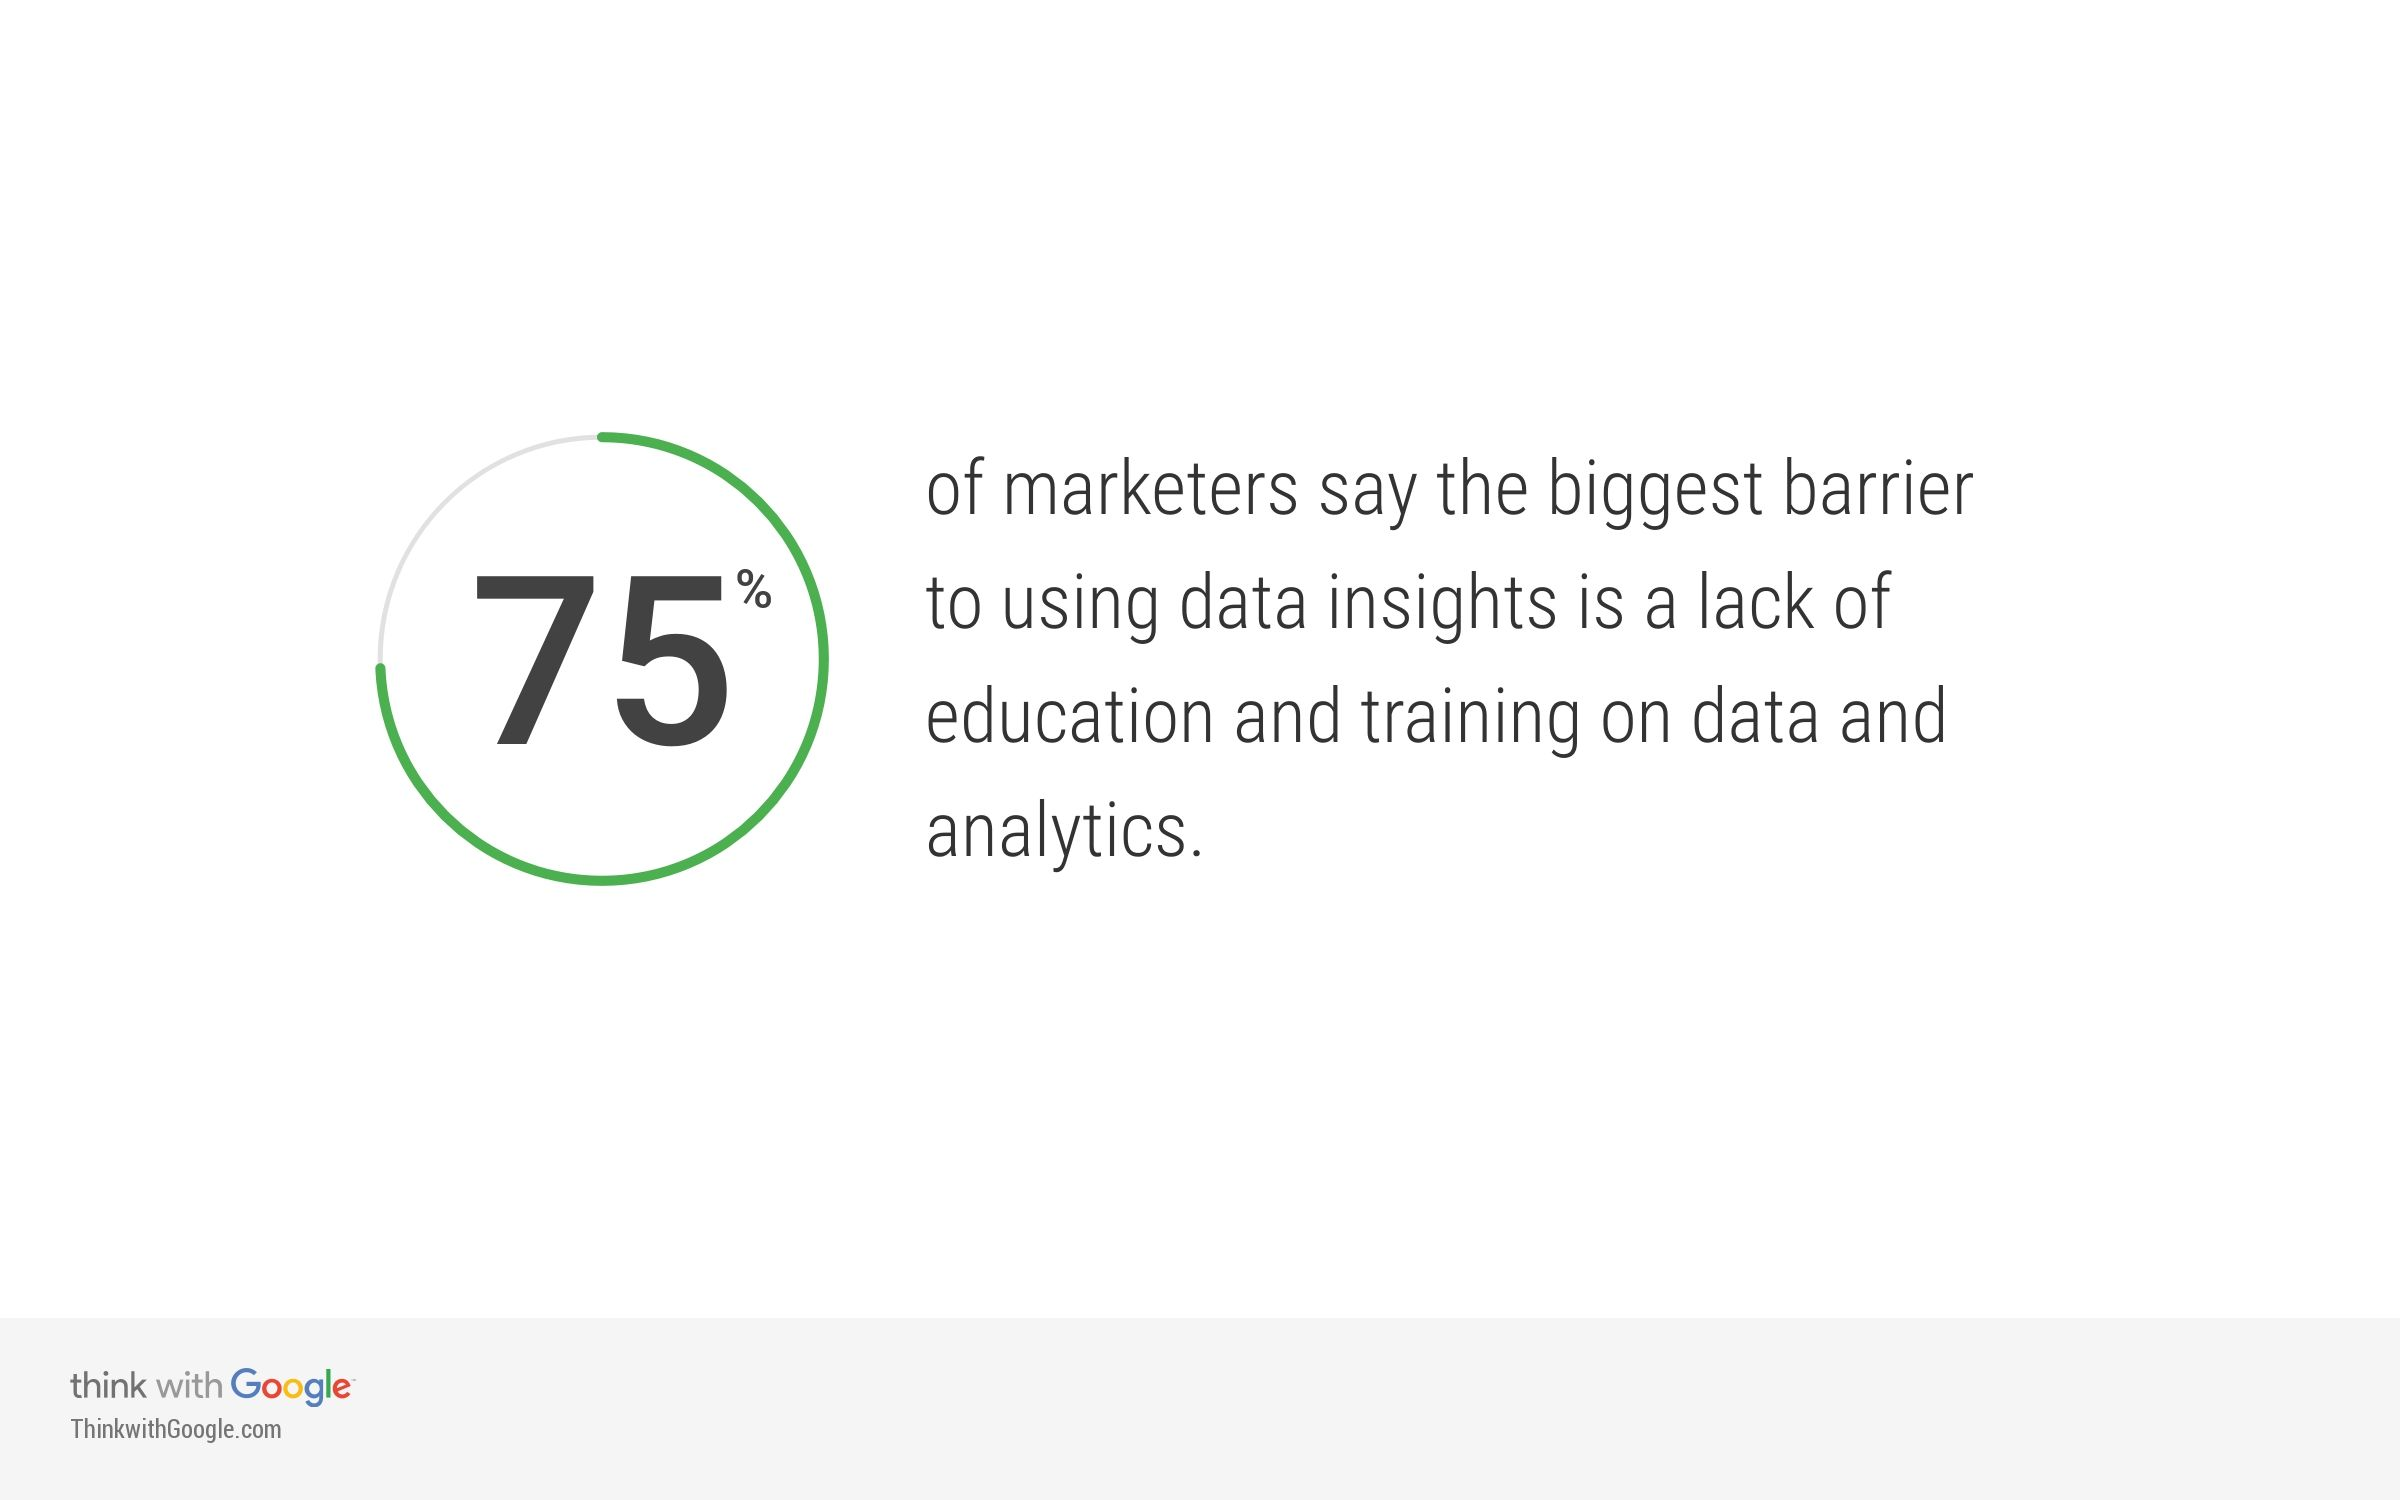 Think with Google - Education Training Crucial Data Insights